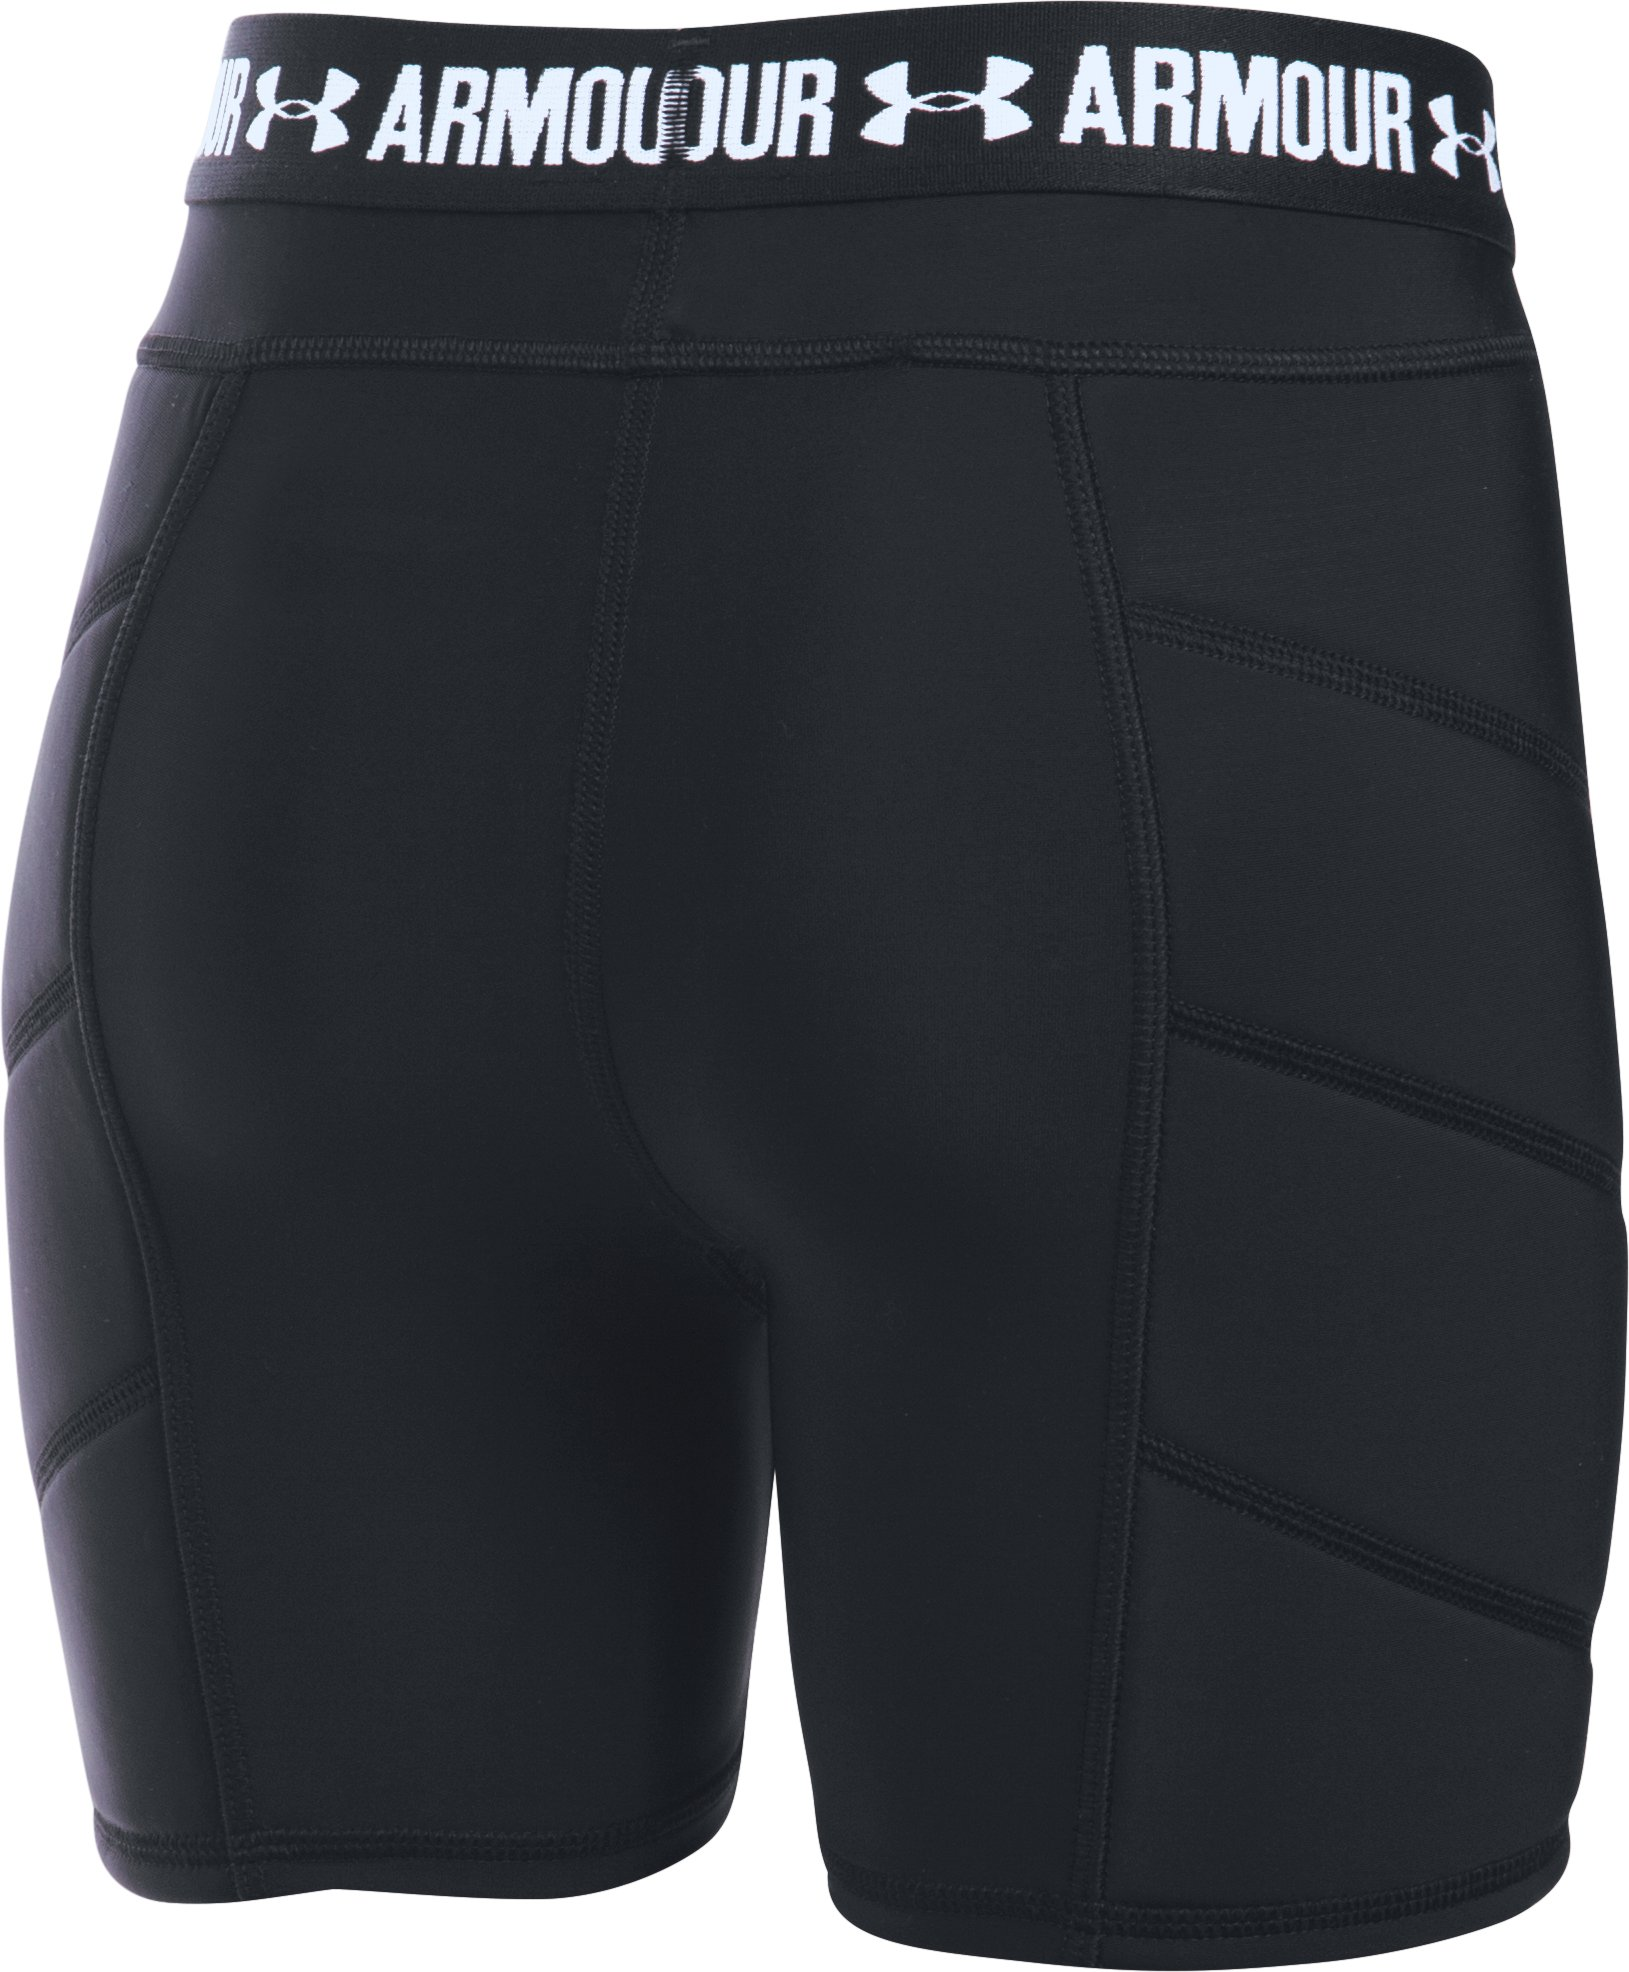 sliders for kids Girls' UA Softball Slider Does the job and is comfortable....Bought this for my daughter and she loves the feel of these shorts....Bought a month ago great quality and price granddaughter is very please